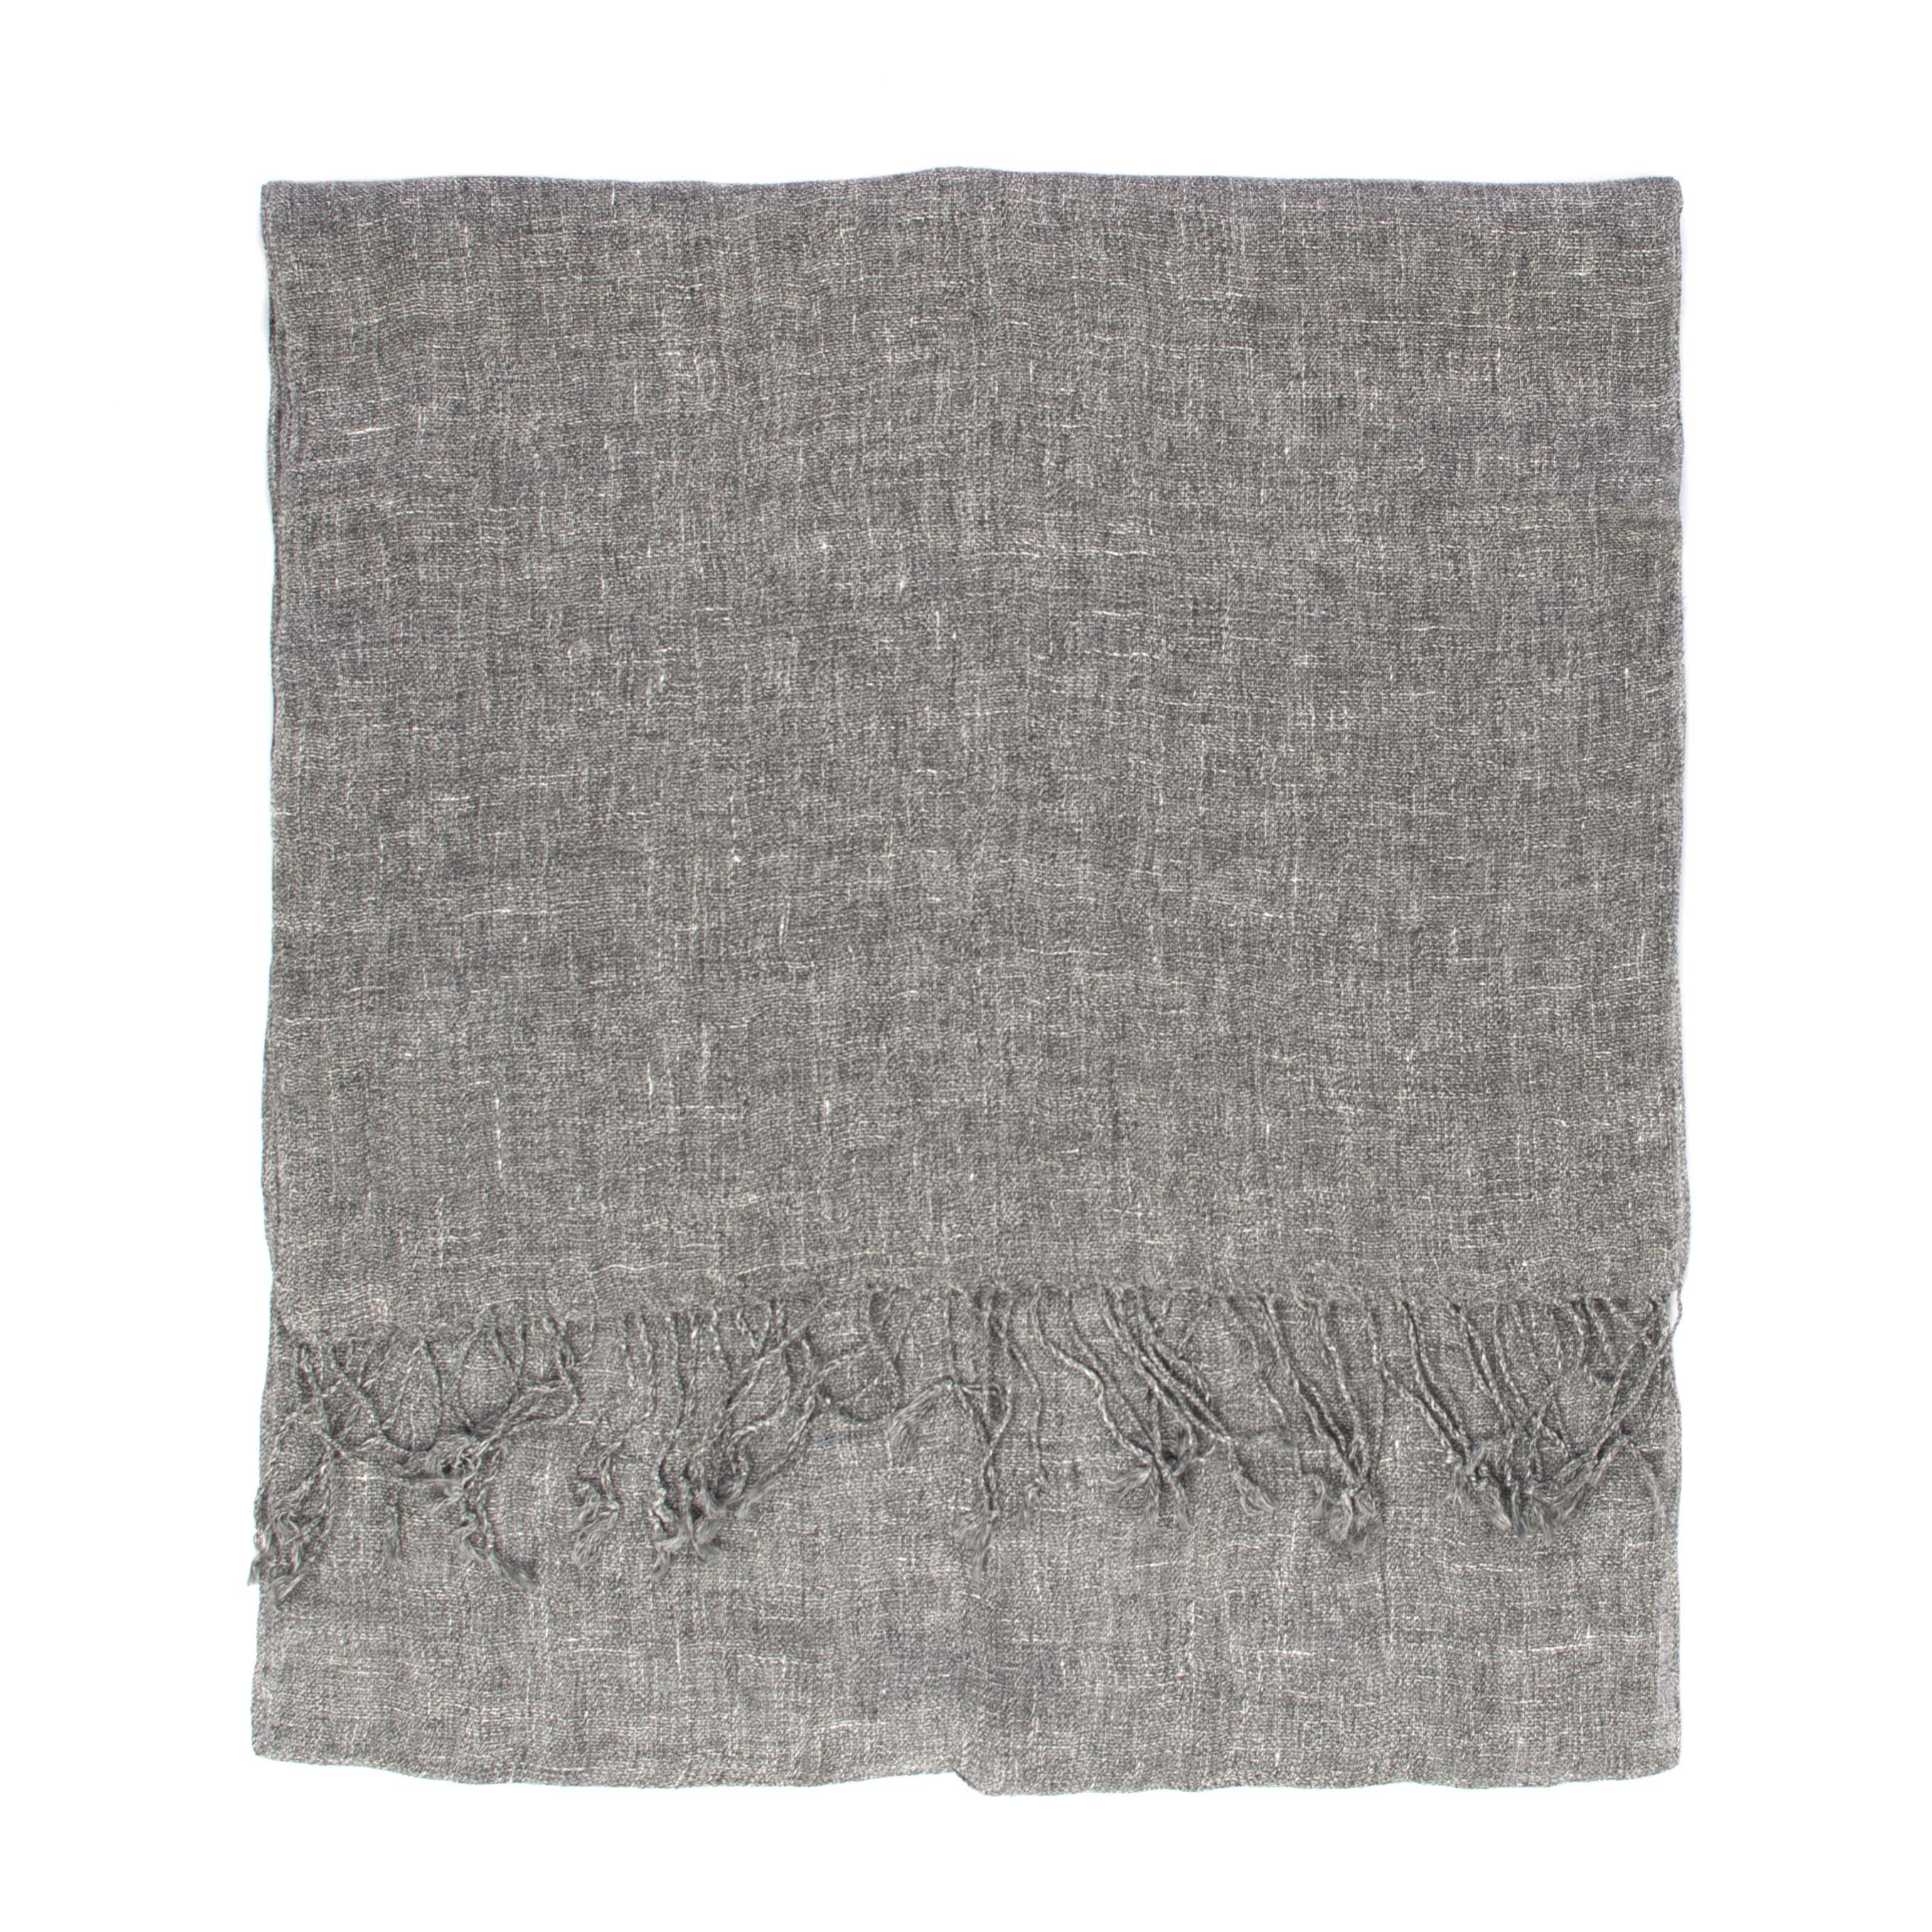 Grey linen scarf with fringes